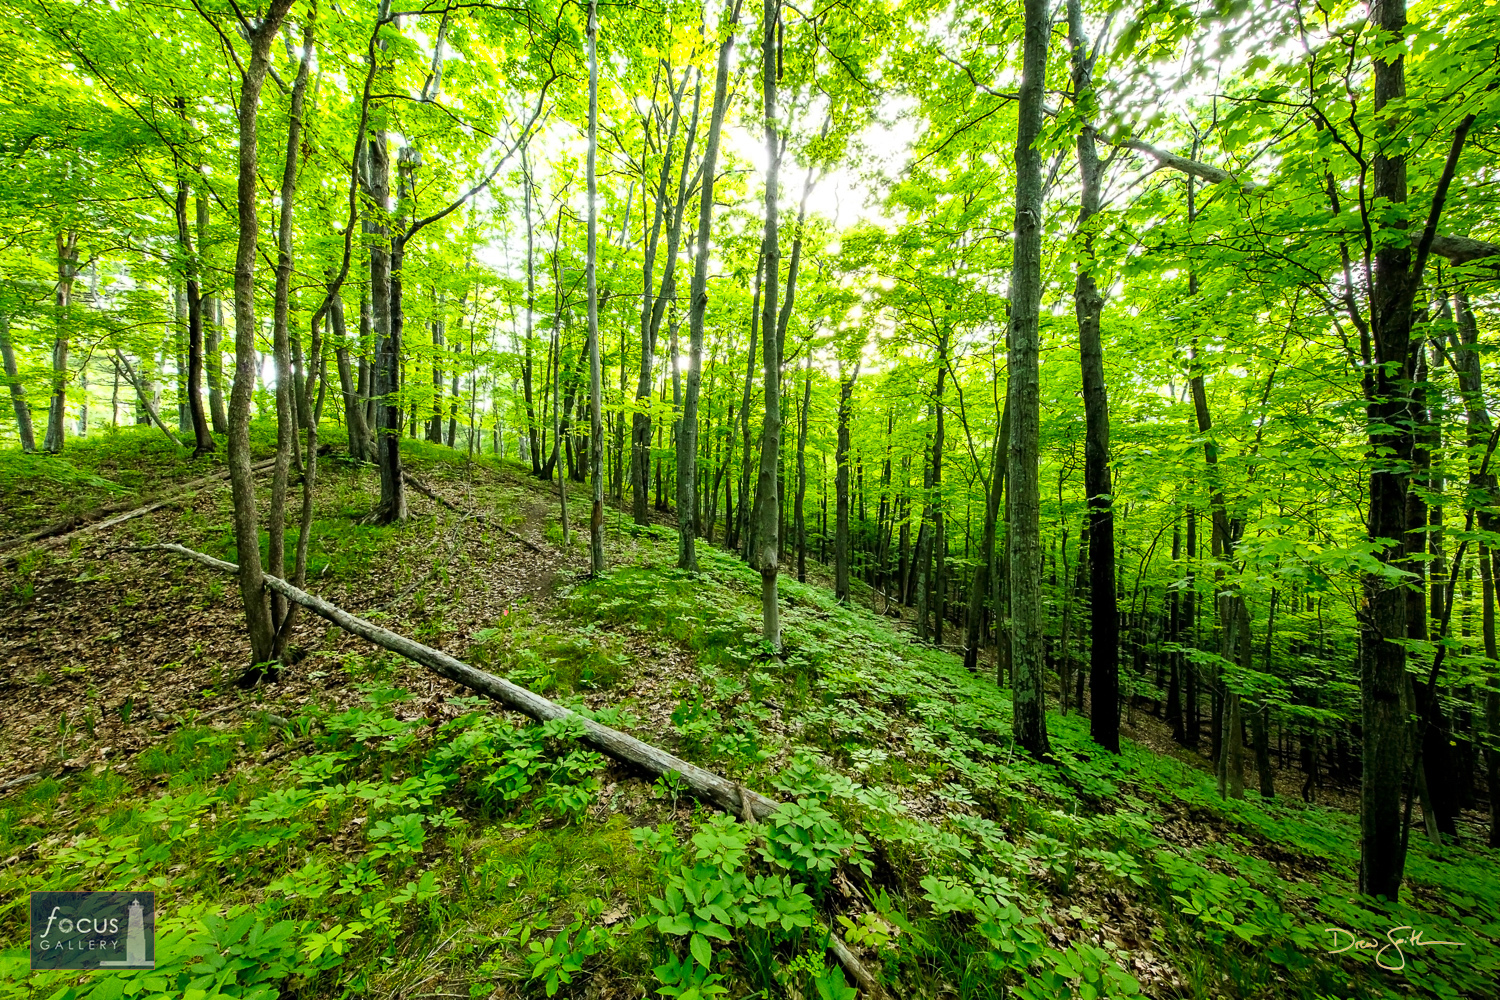 The topography at Mount Minnie, located between Platte and Little Platte Lakes, is very hilly with wonderful trails through woods...